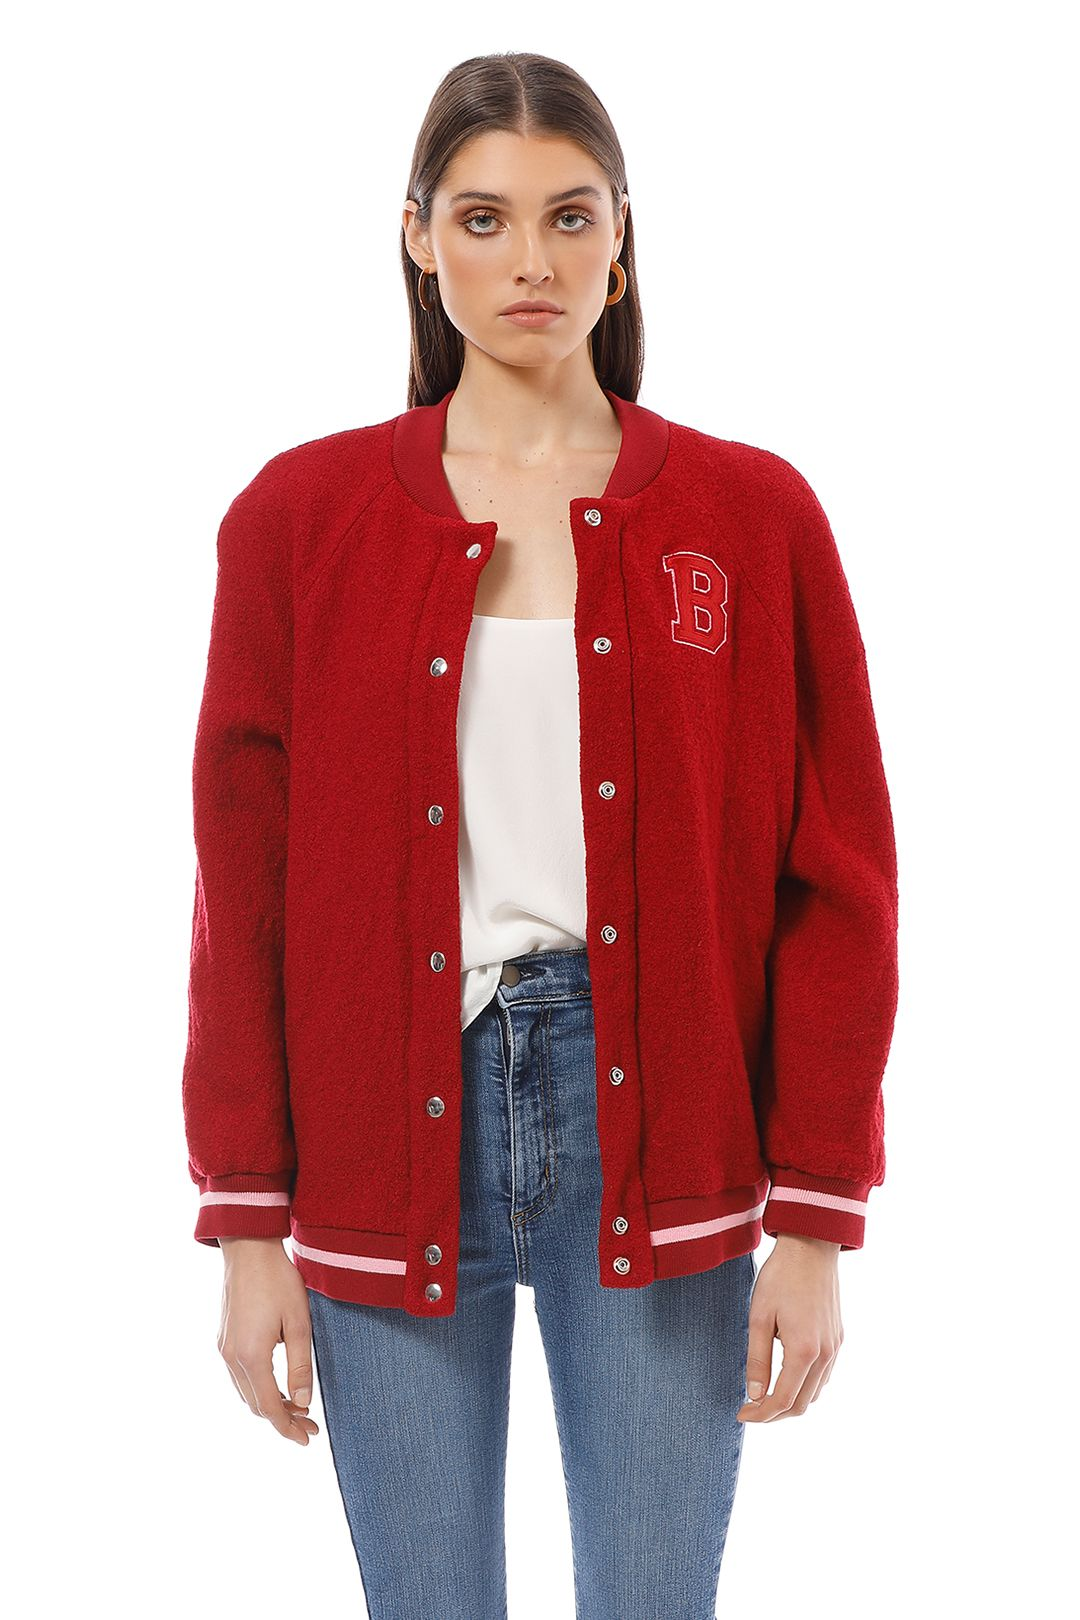 Bec and Bridge - Be Mine Bomber - Red - Front Detail